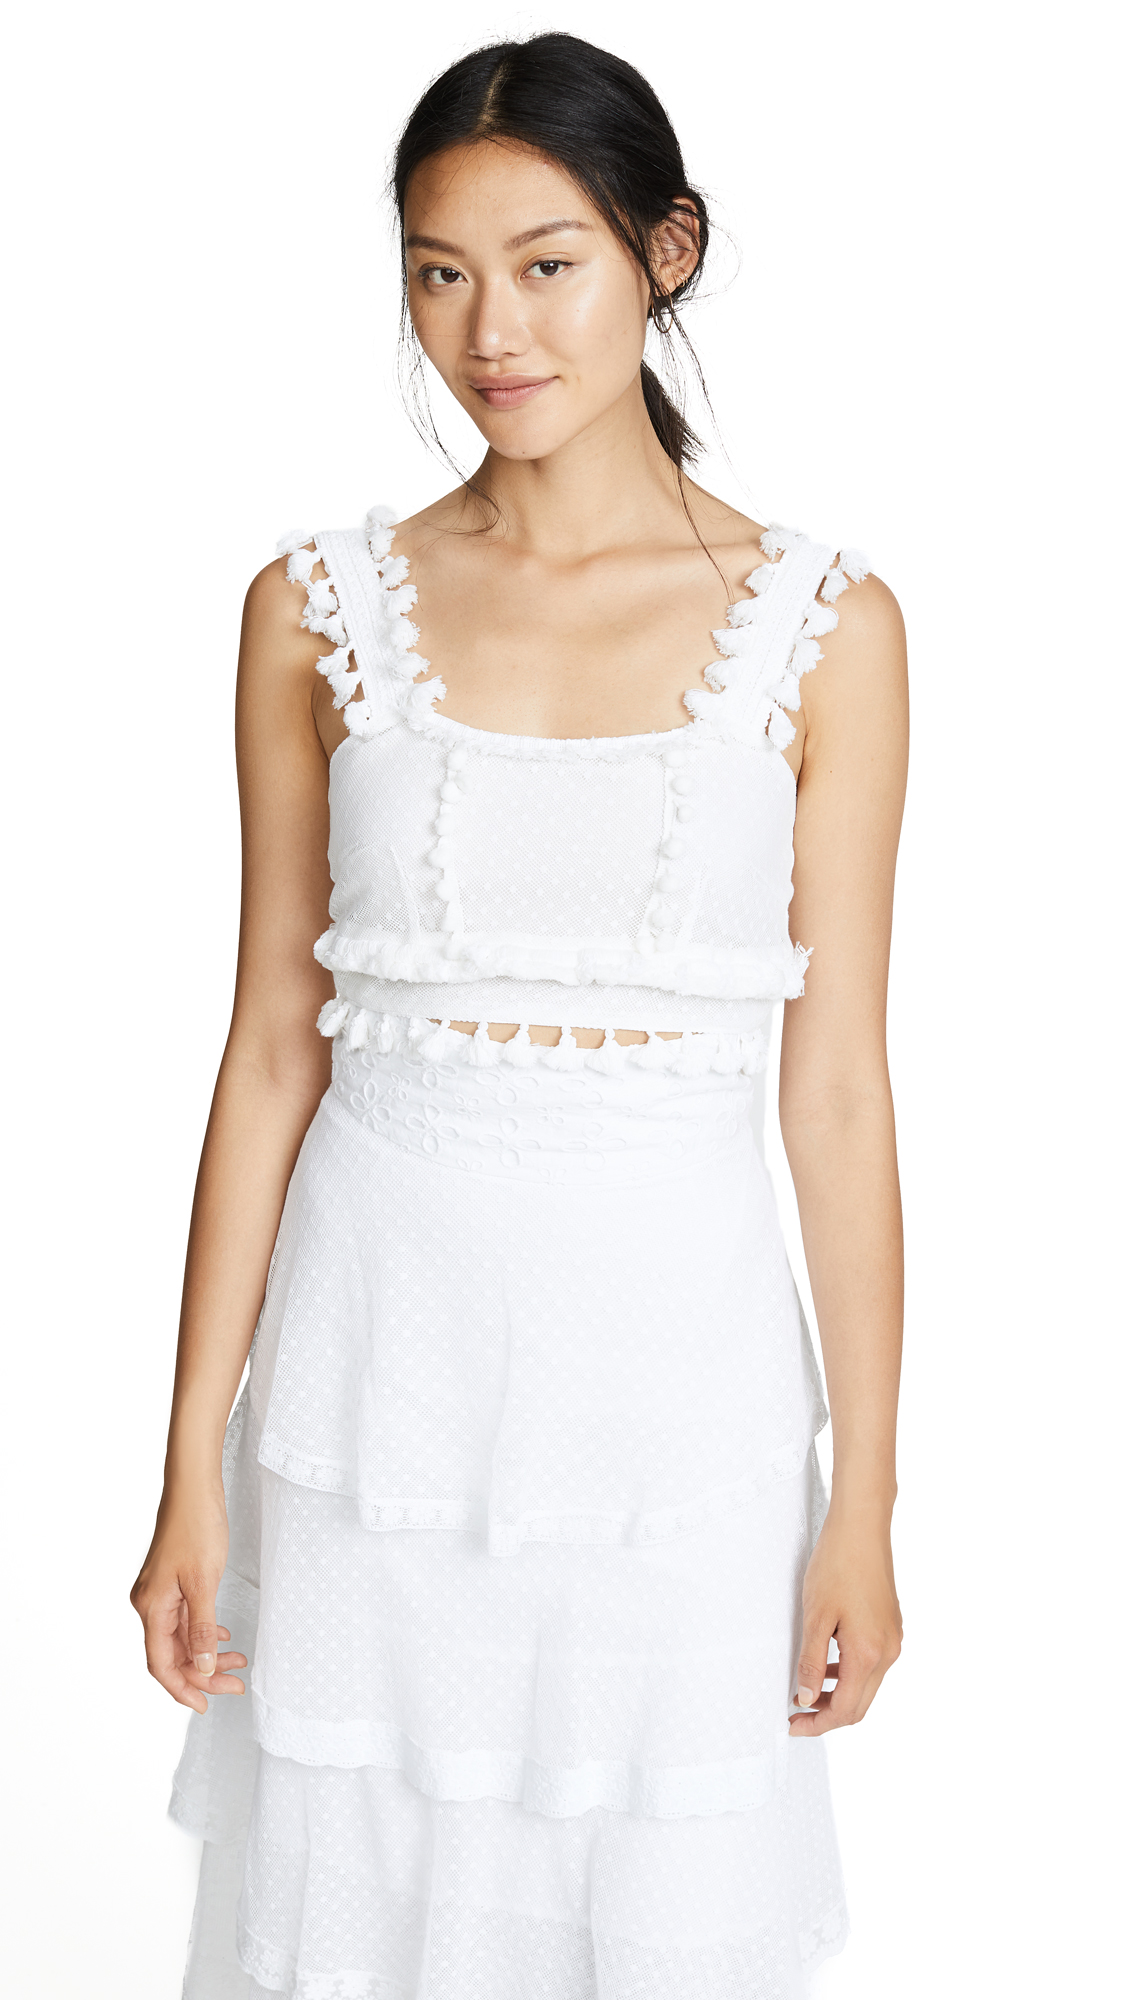 Place Nationale Massilla Crop Top with Swiss Dot Lace In White